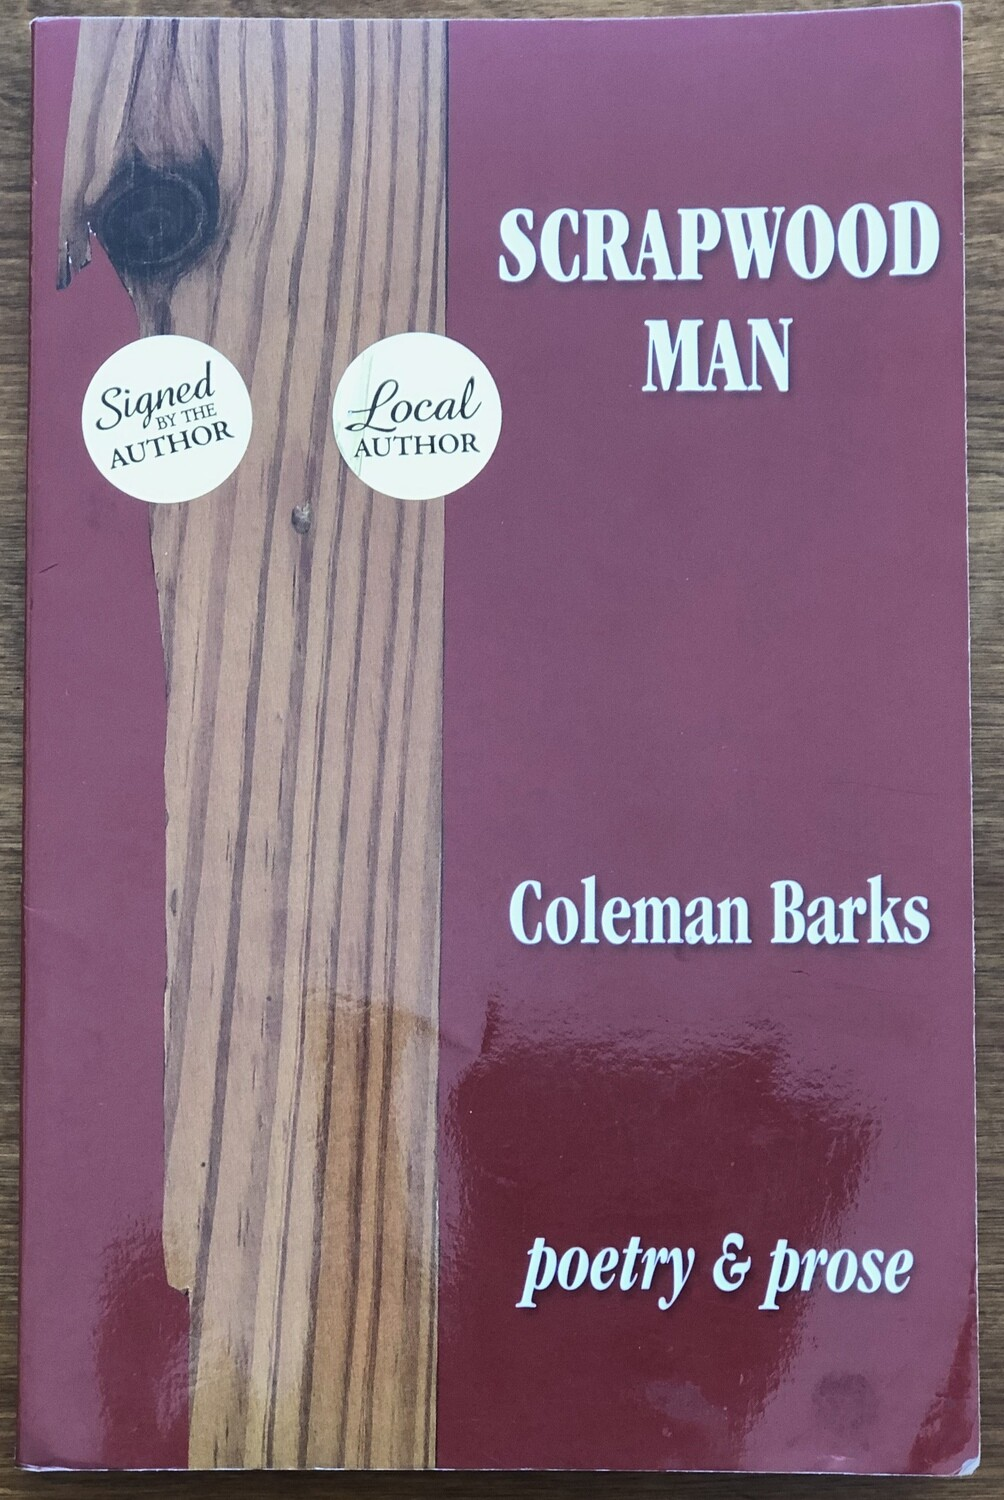 Scrapwood Man by Coleman Barks Poetry & Prose Signed